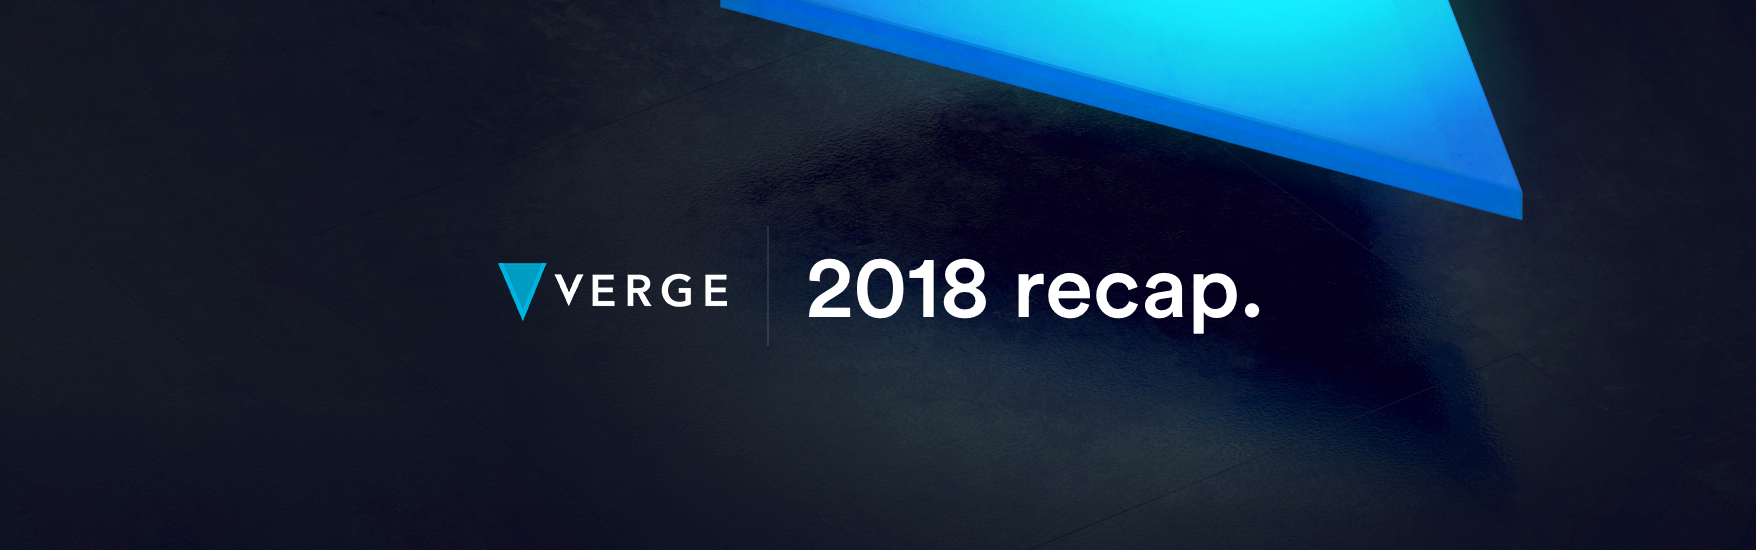 Verge Currency - vergecurrency - Medium